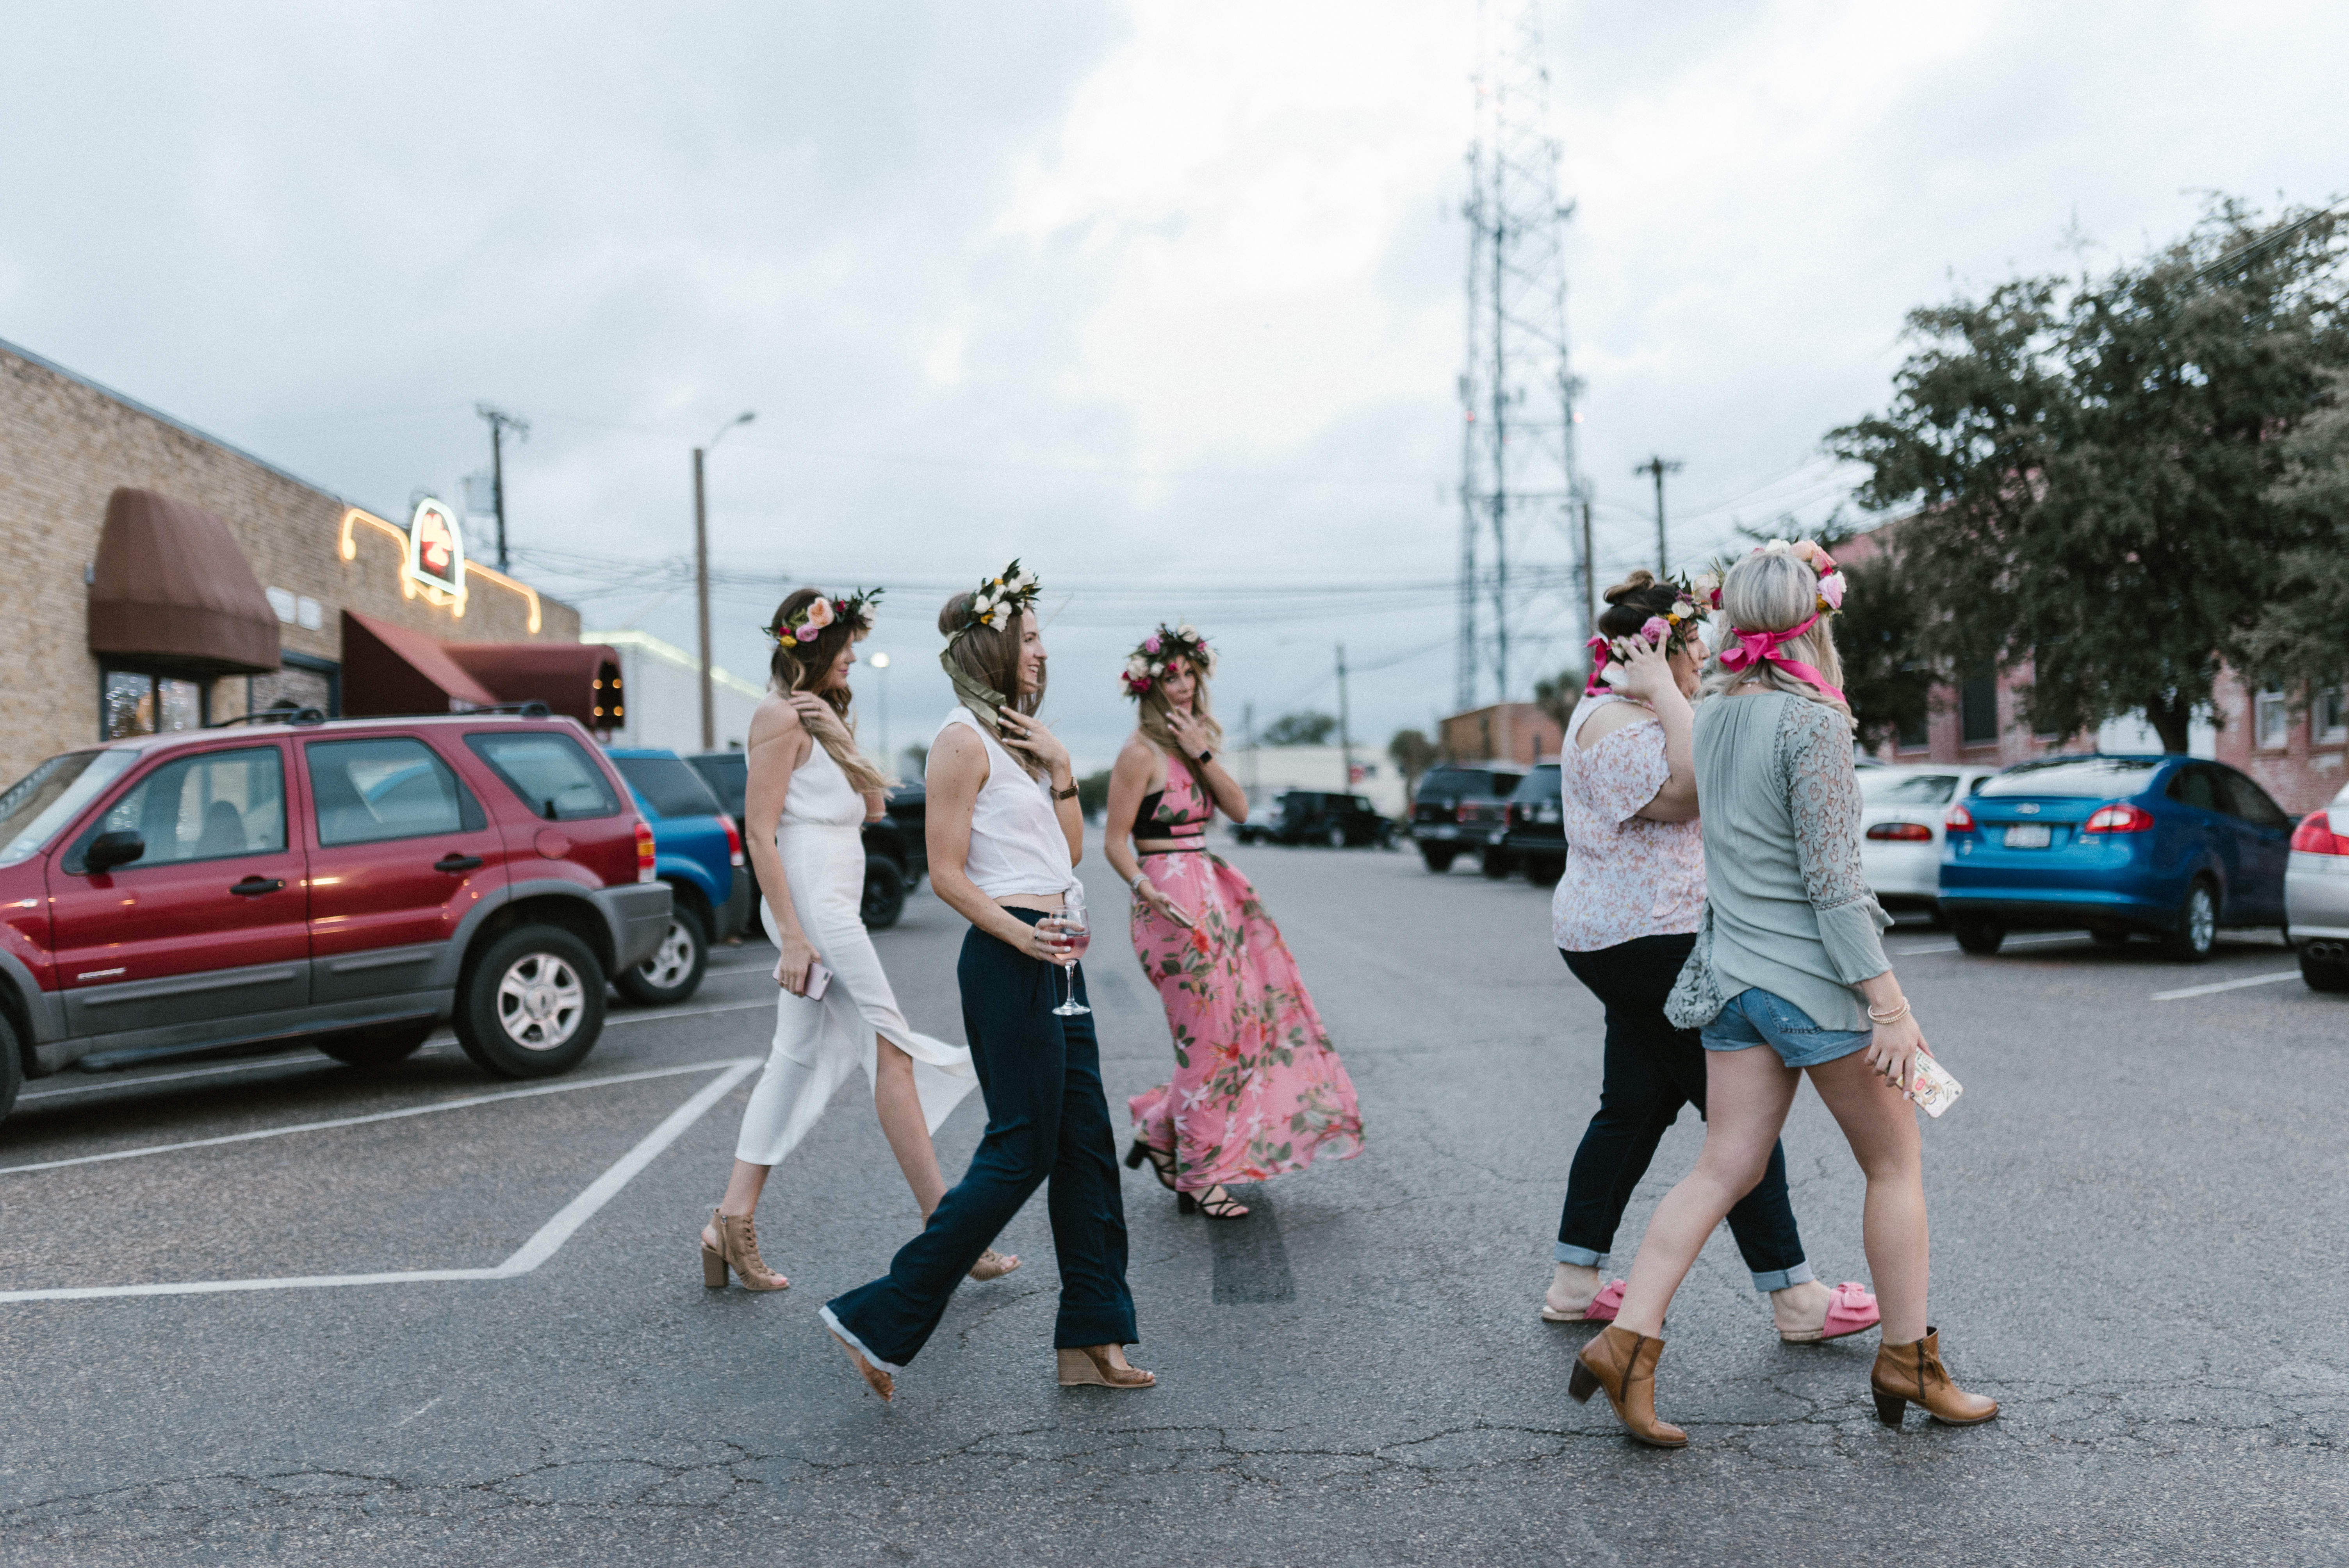 Flower Crown Party in West Texas | Bachelorette Idea | Lubbock, TX bloggers | by lifestyle and fashion blogger Audrey Madison stowe - Bachelorette Flower Crowns featured by popular Texas blogger, Audrey Madison Stowe